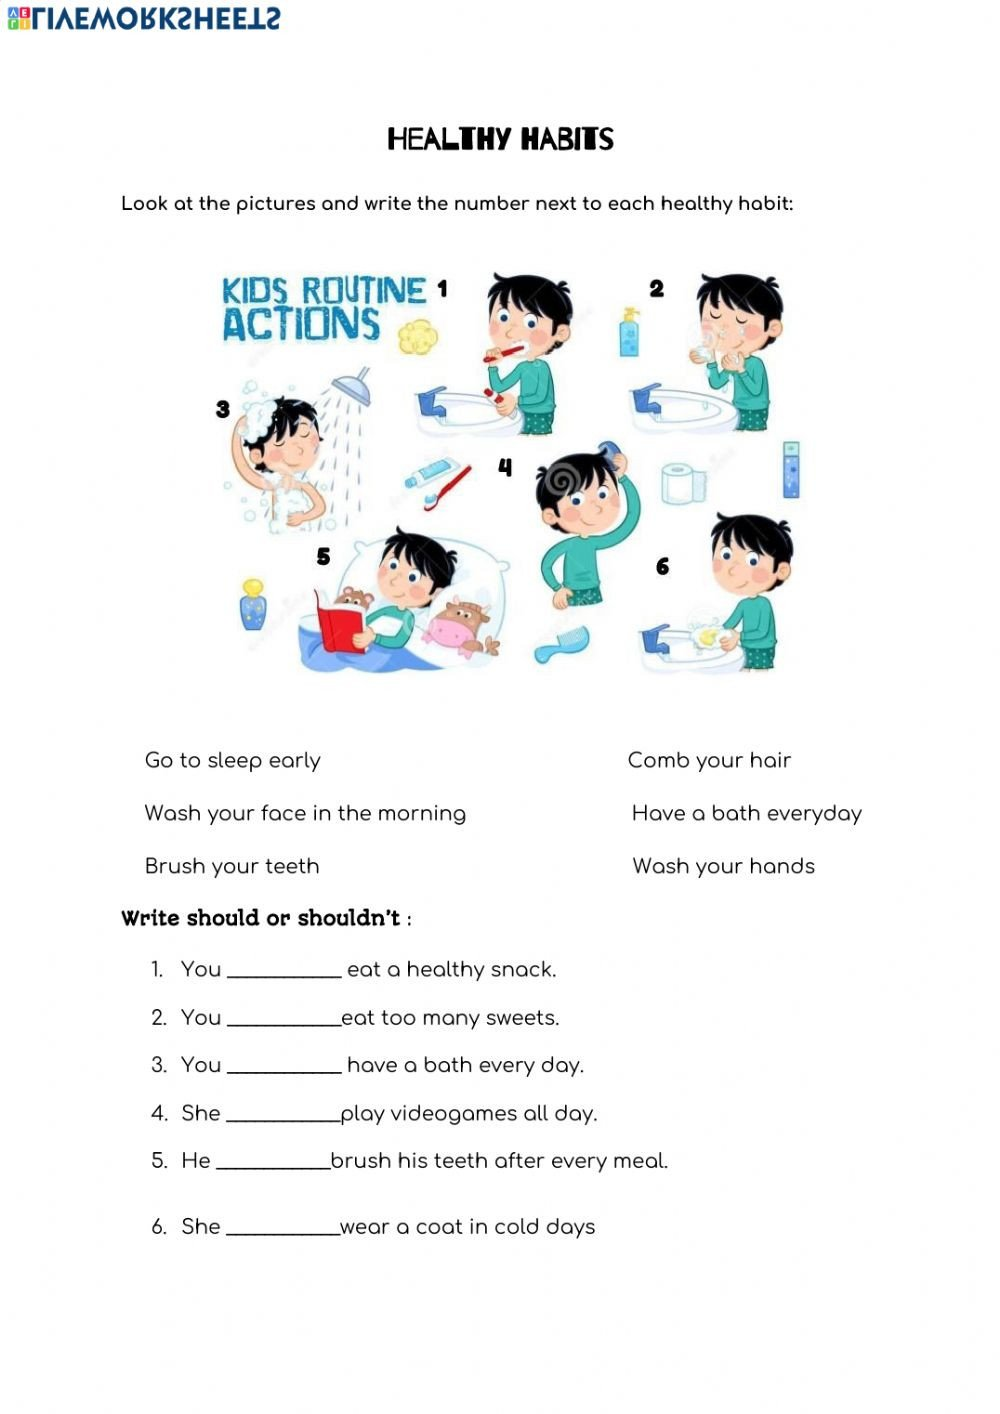 7 Habits for Kids Worksheets Healthy Habits Interactive Worksheet